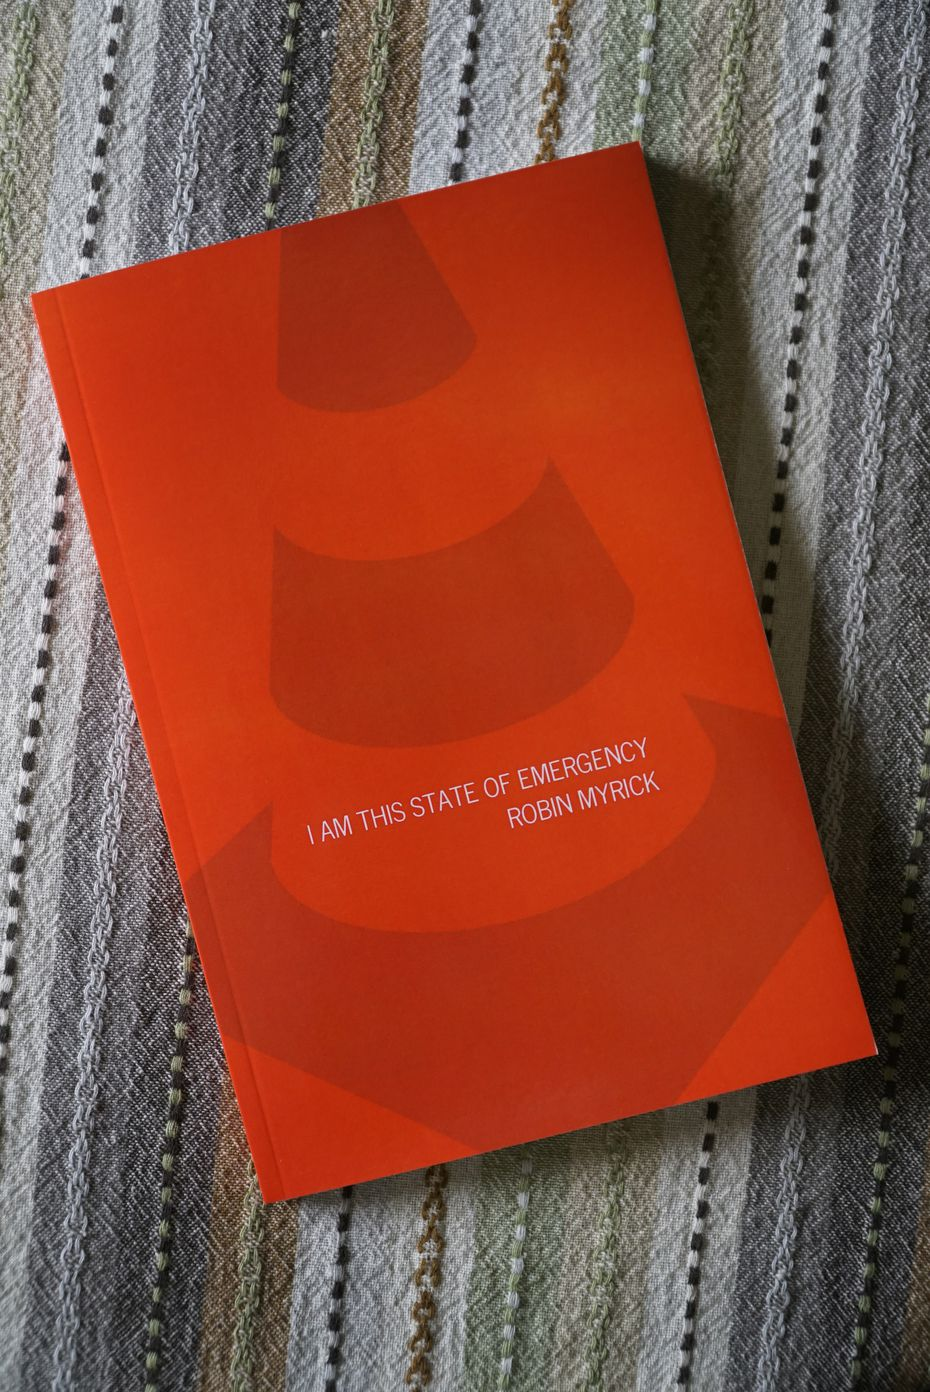 """I Am This State Of Emergency"" by Robin Myrick is the first publication from Surveyor Books."